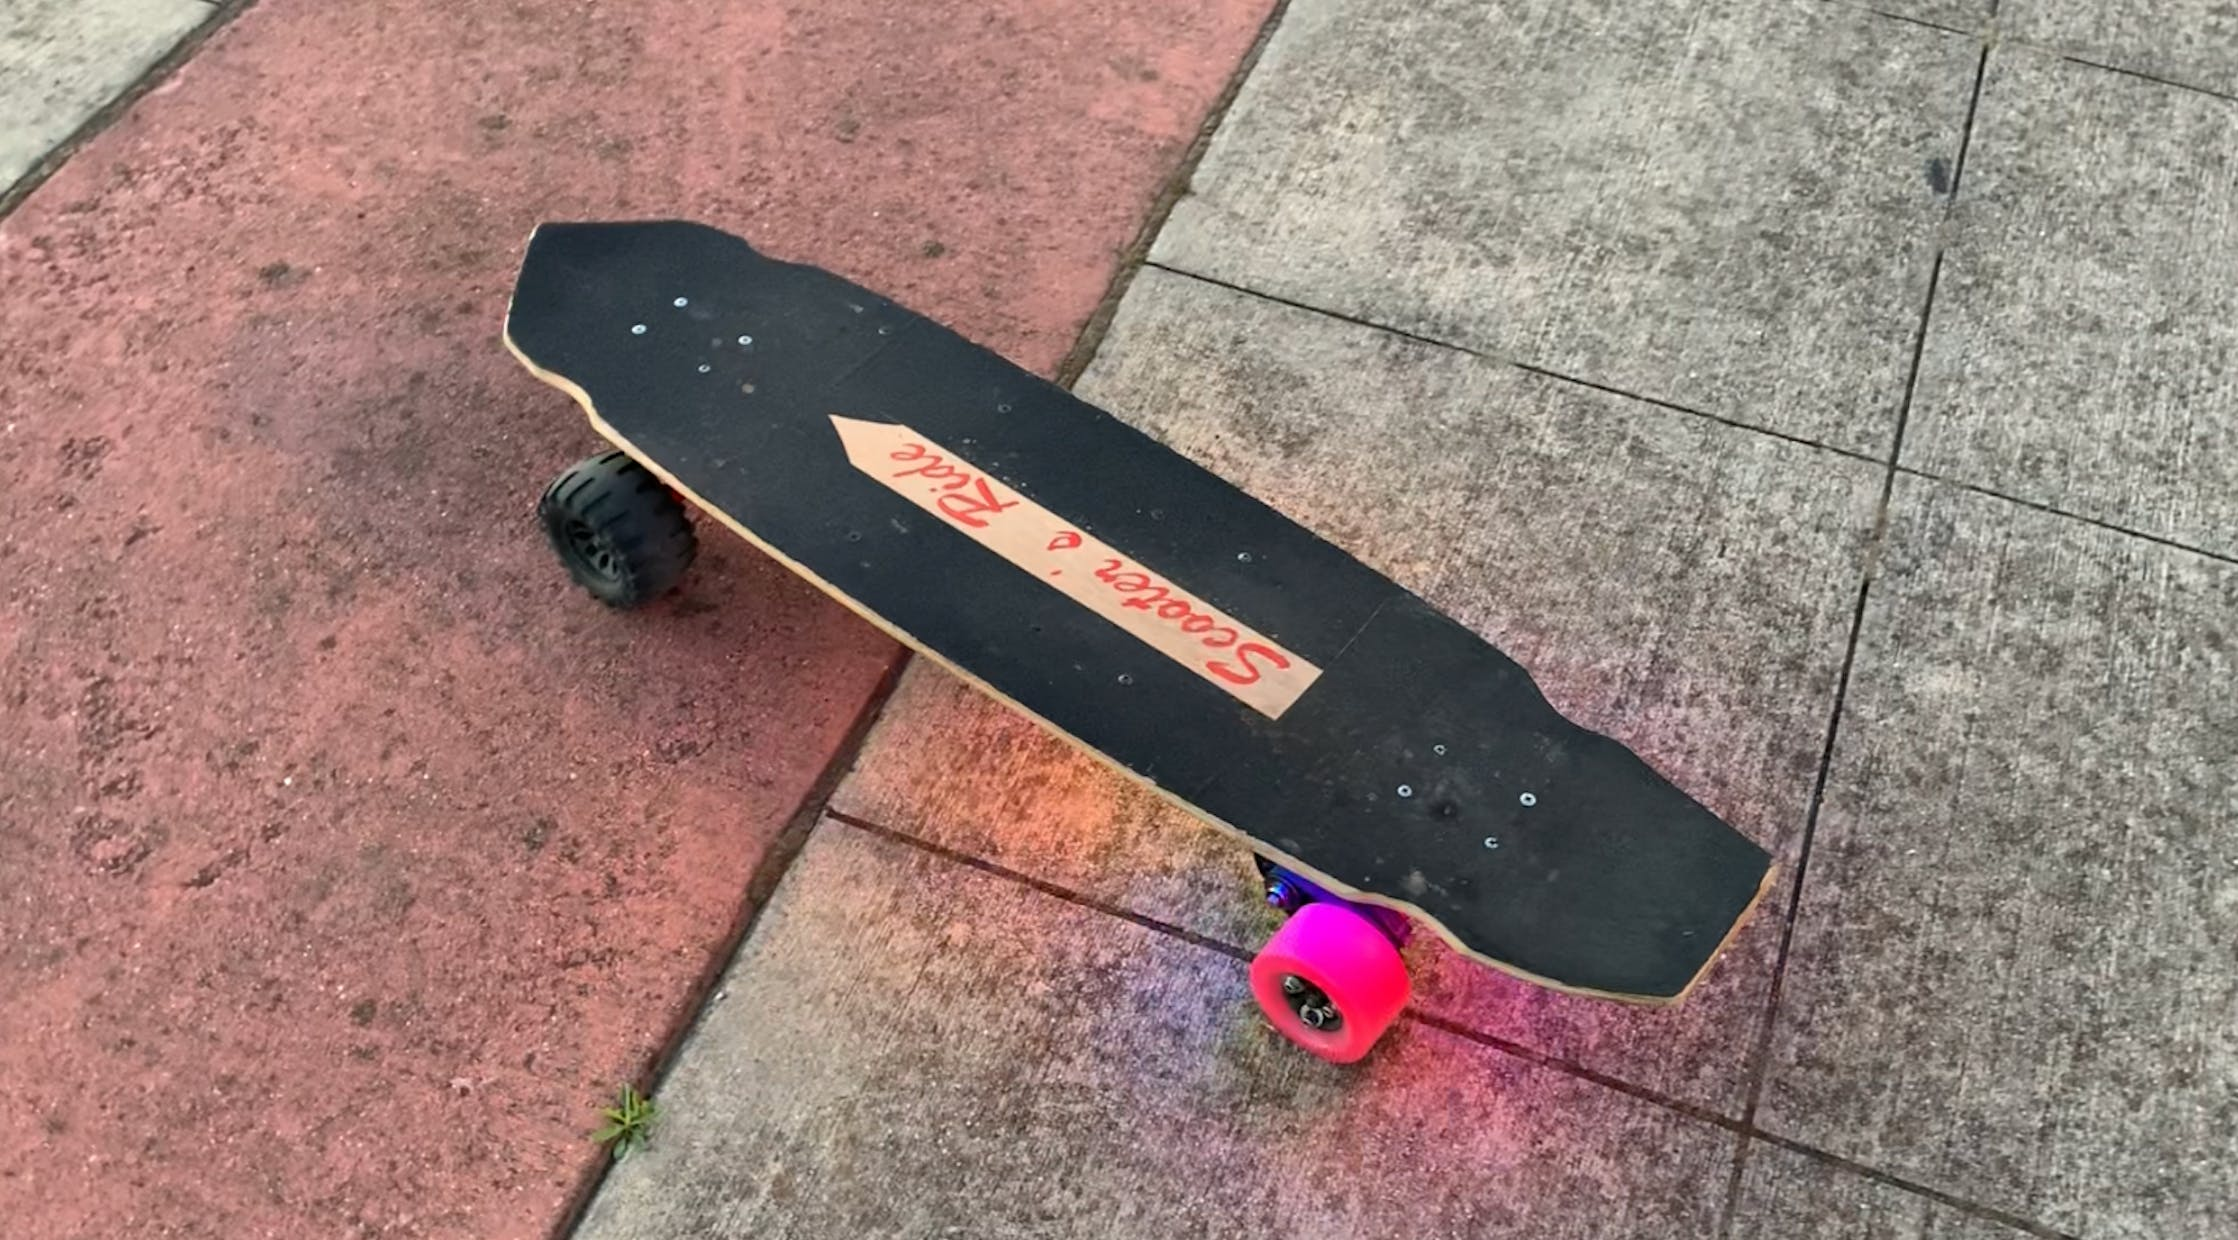 Electric Skateboard post-operation